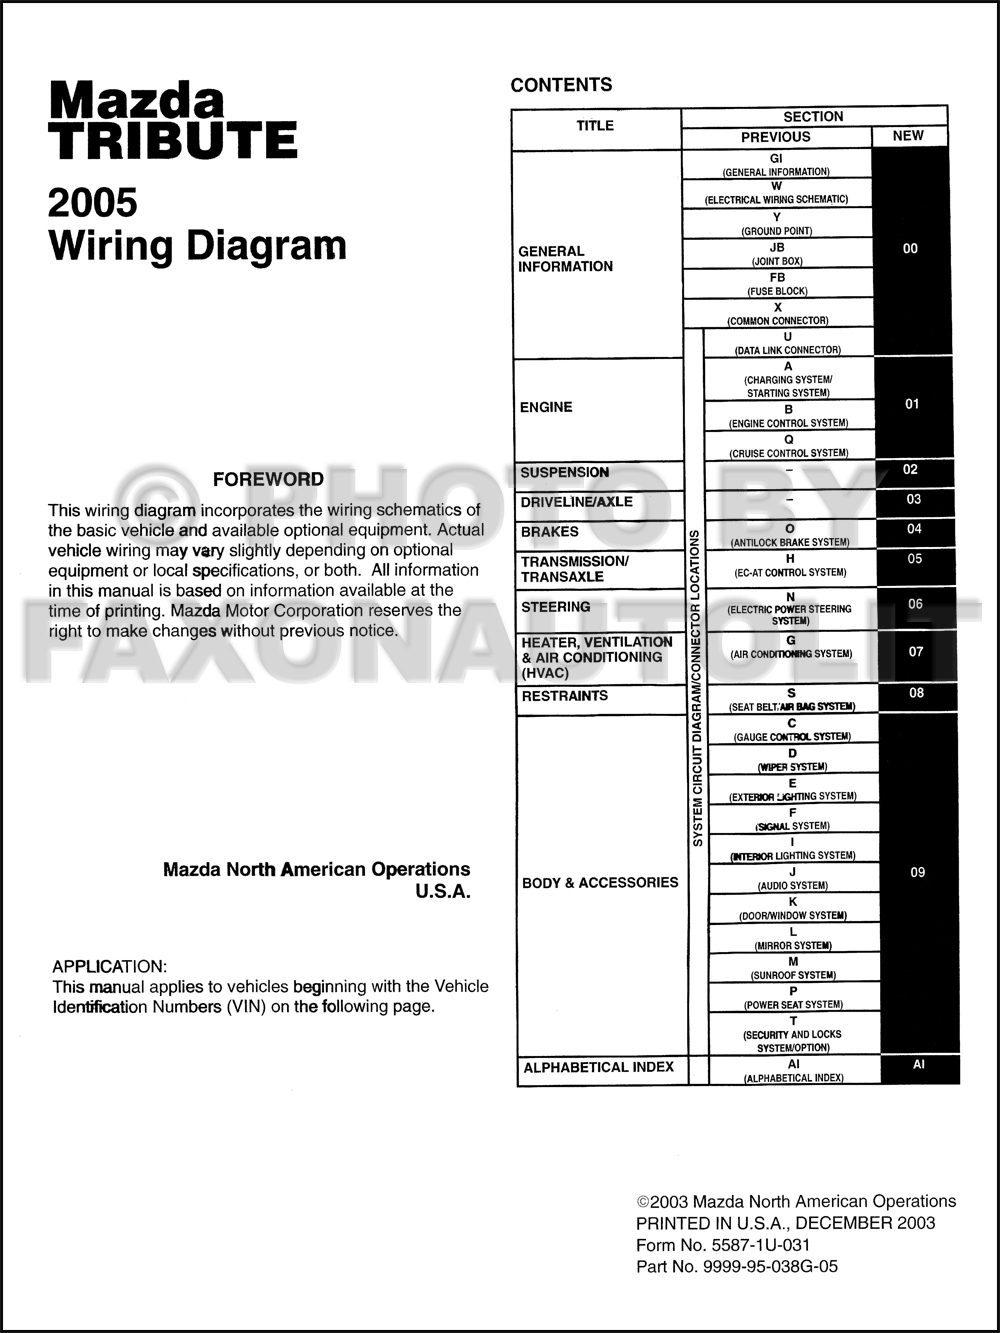 Diagram 2005 Mazda Tribute Wiring Diagram Full Version Hd Quality Wiring Diagram Diagramadores Trodat Printy 4850 Fr